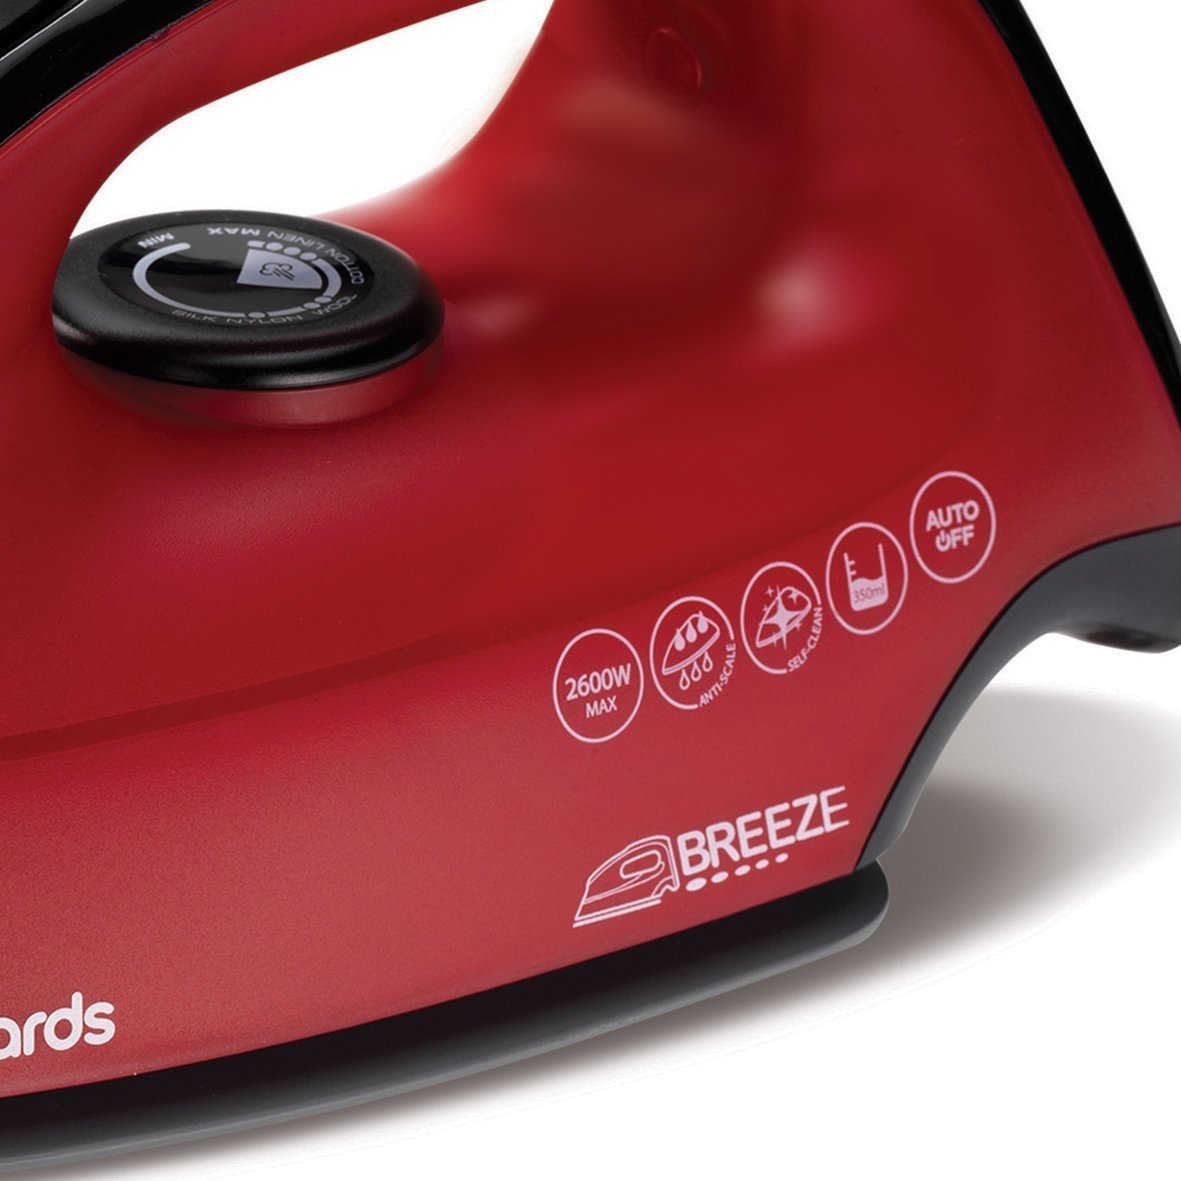 Morphy Richards 220v iron 2600 watts with steam & Auto Shut off 220 – 240 volts 50 / 60 hz Bundle With Dynastar Plug Adapters (NOT FOR USA)